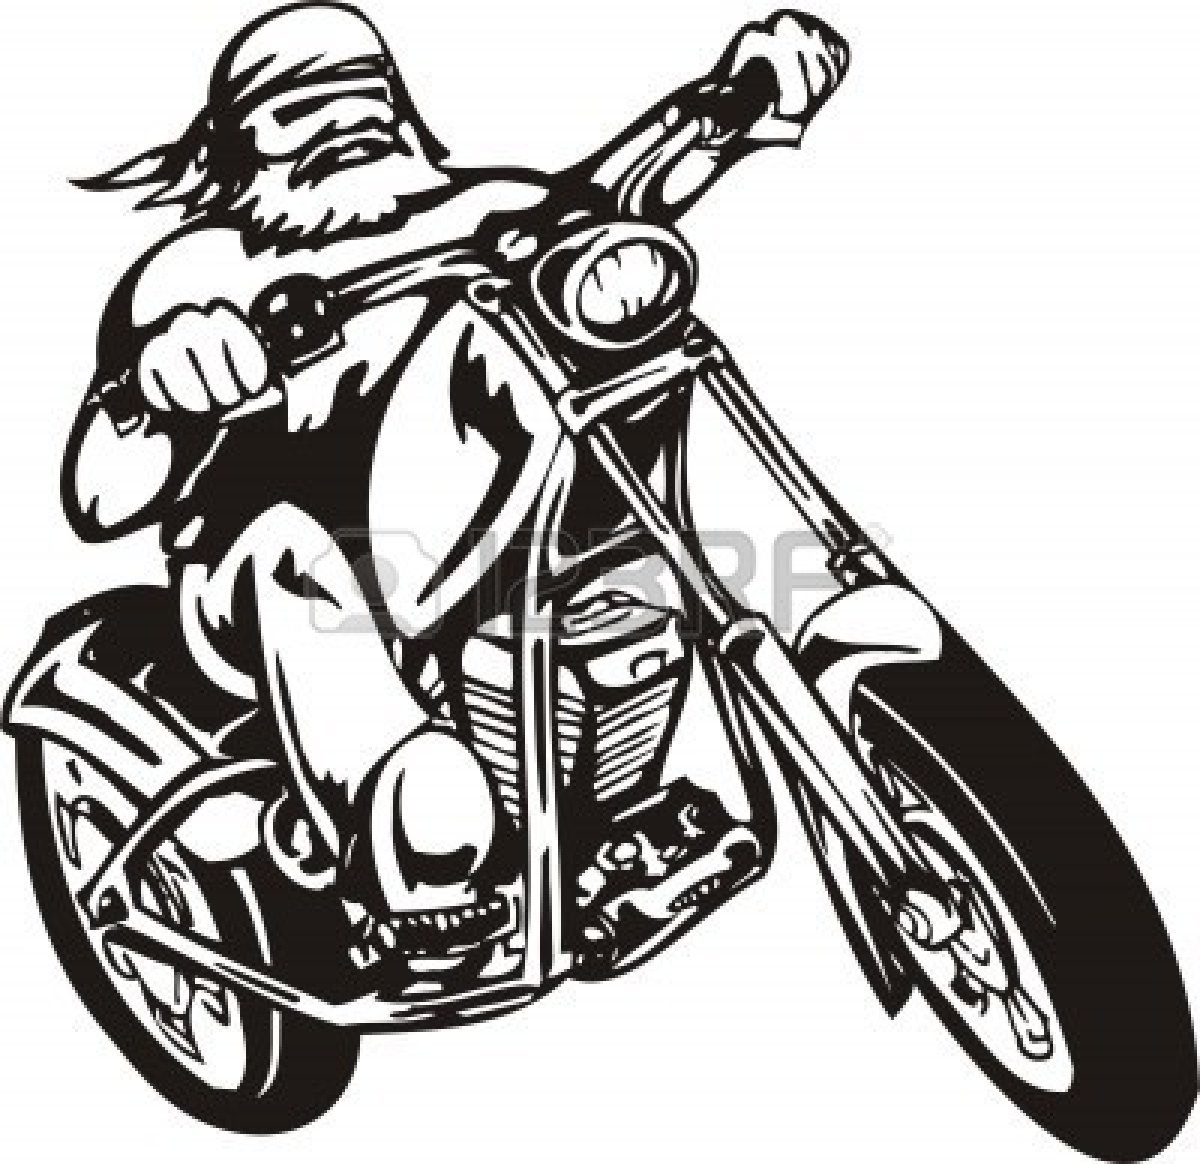 Motorcycle Chopper Clipart.